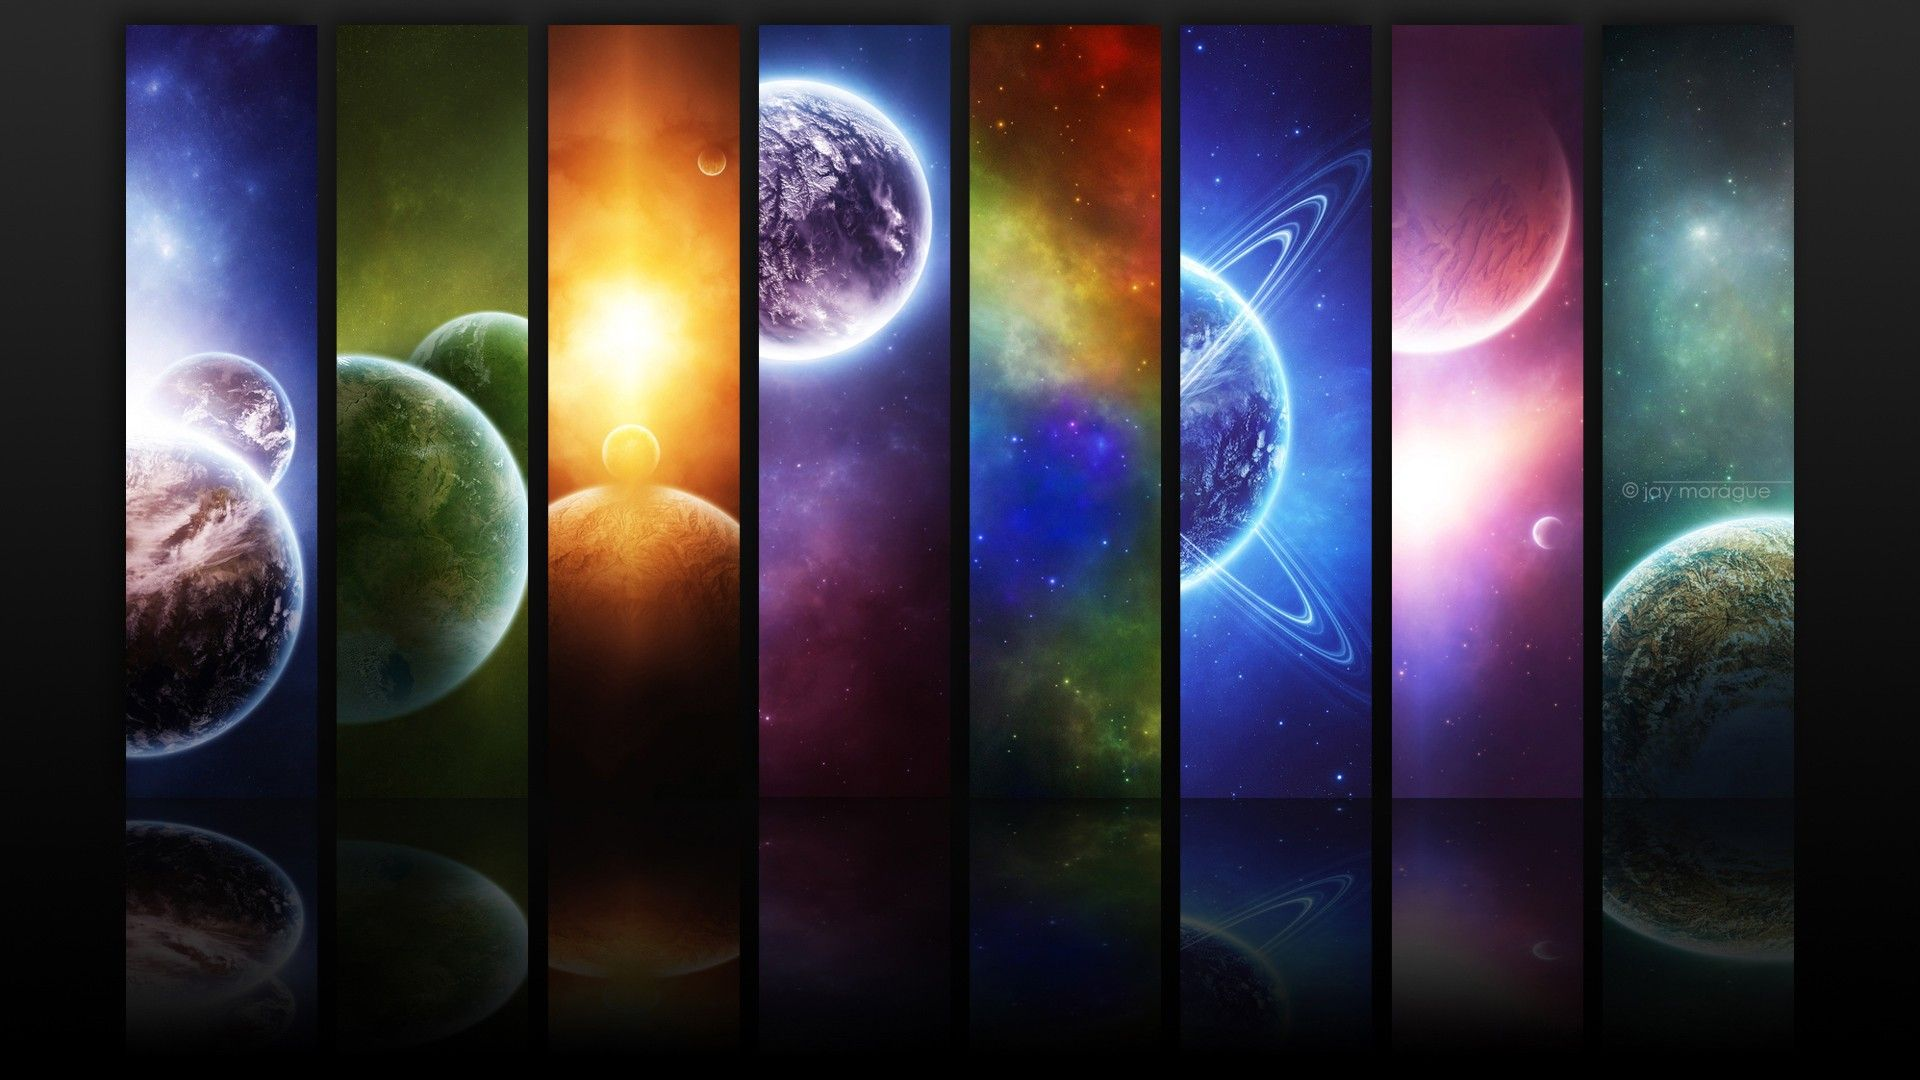 colorful galaxy background desktop backgrounds for free hd rh pinterest com